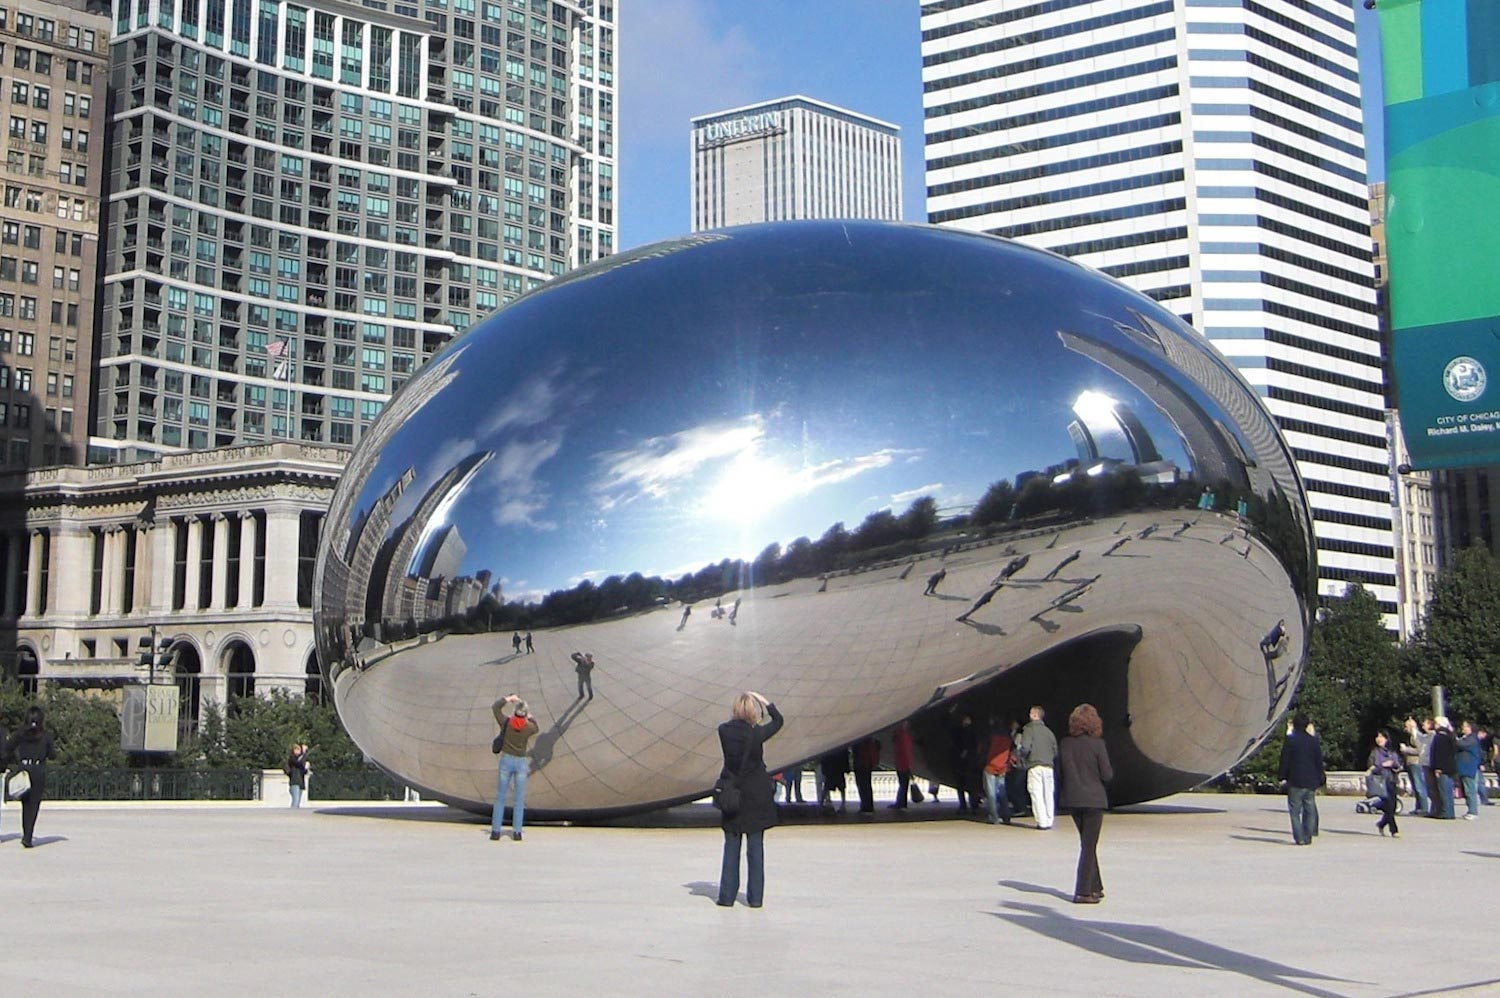 image of Truth-Sculpture-Chicago-Millenium-Park-Delightability-Author-Gregory-Olson